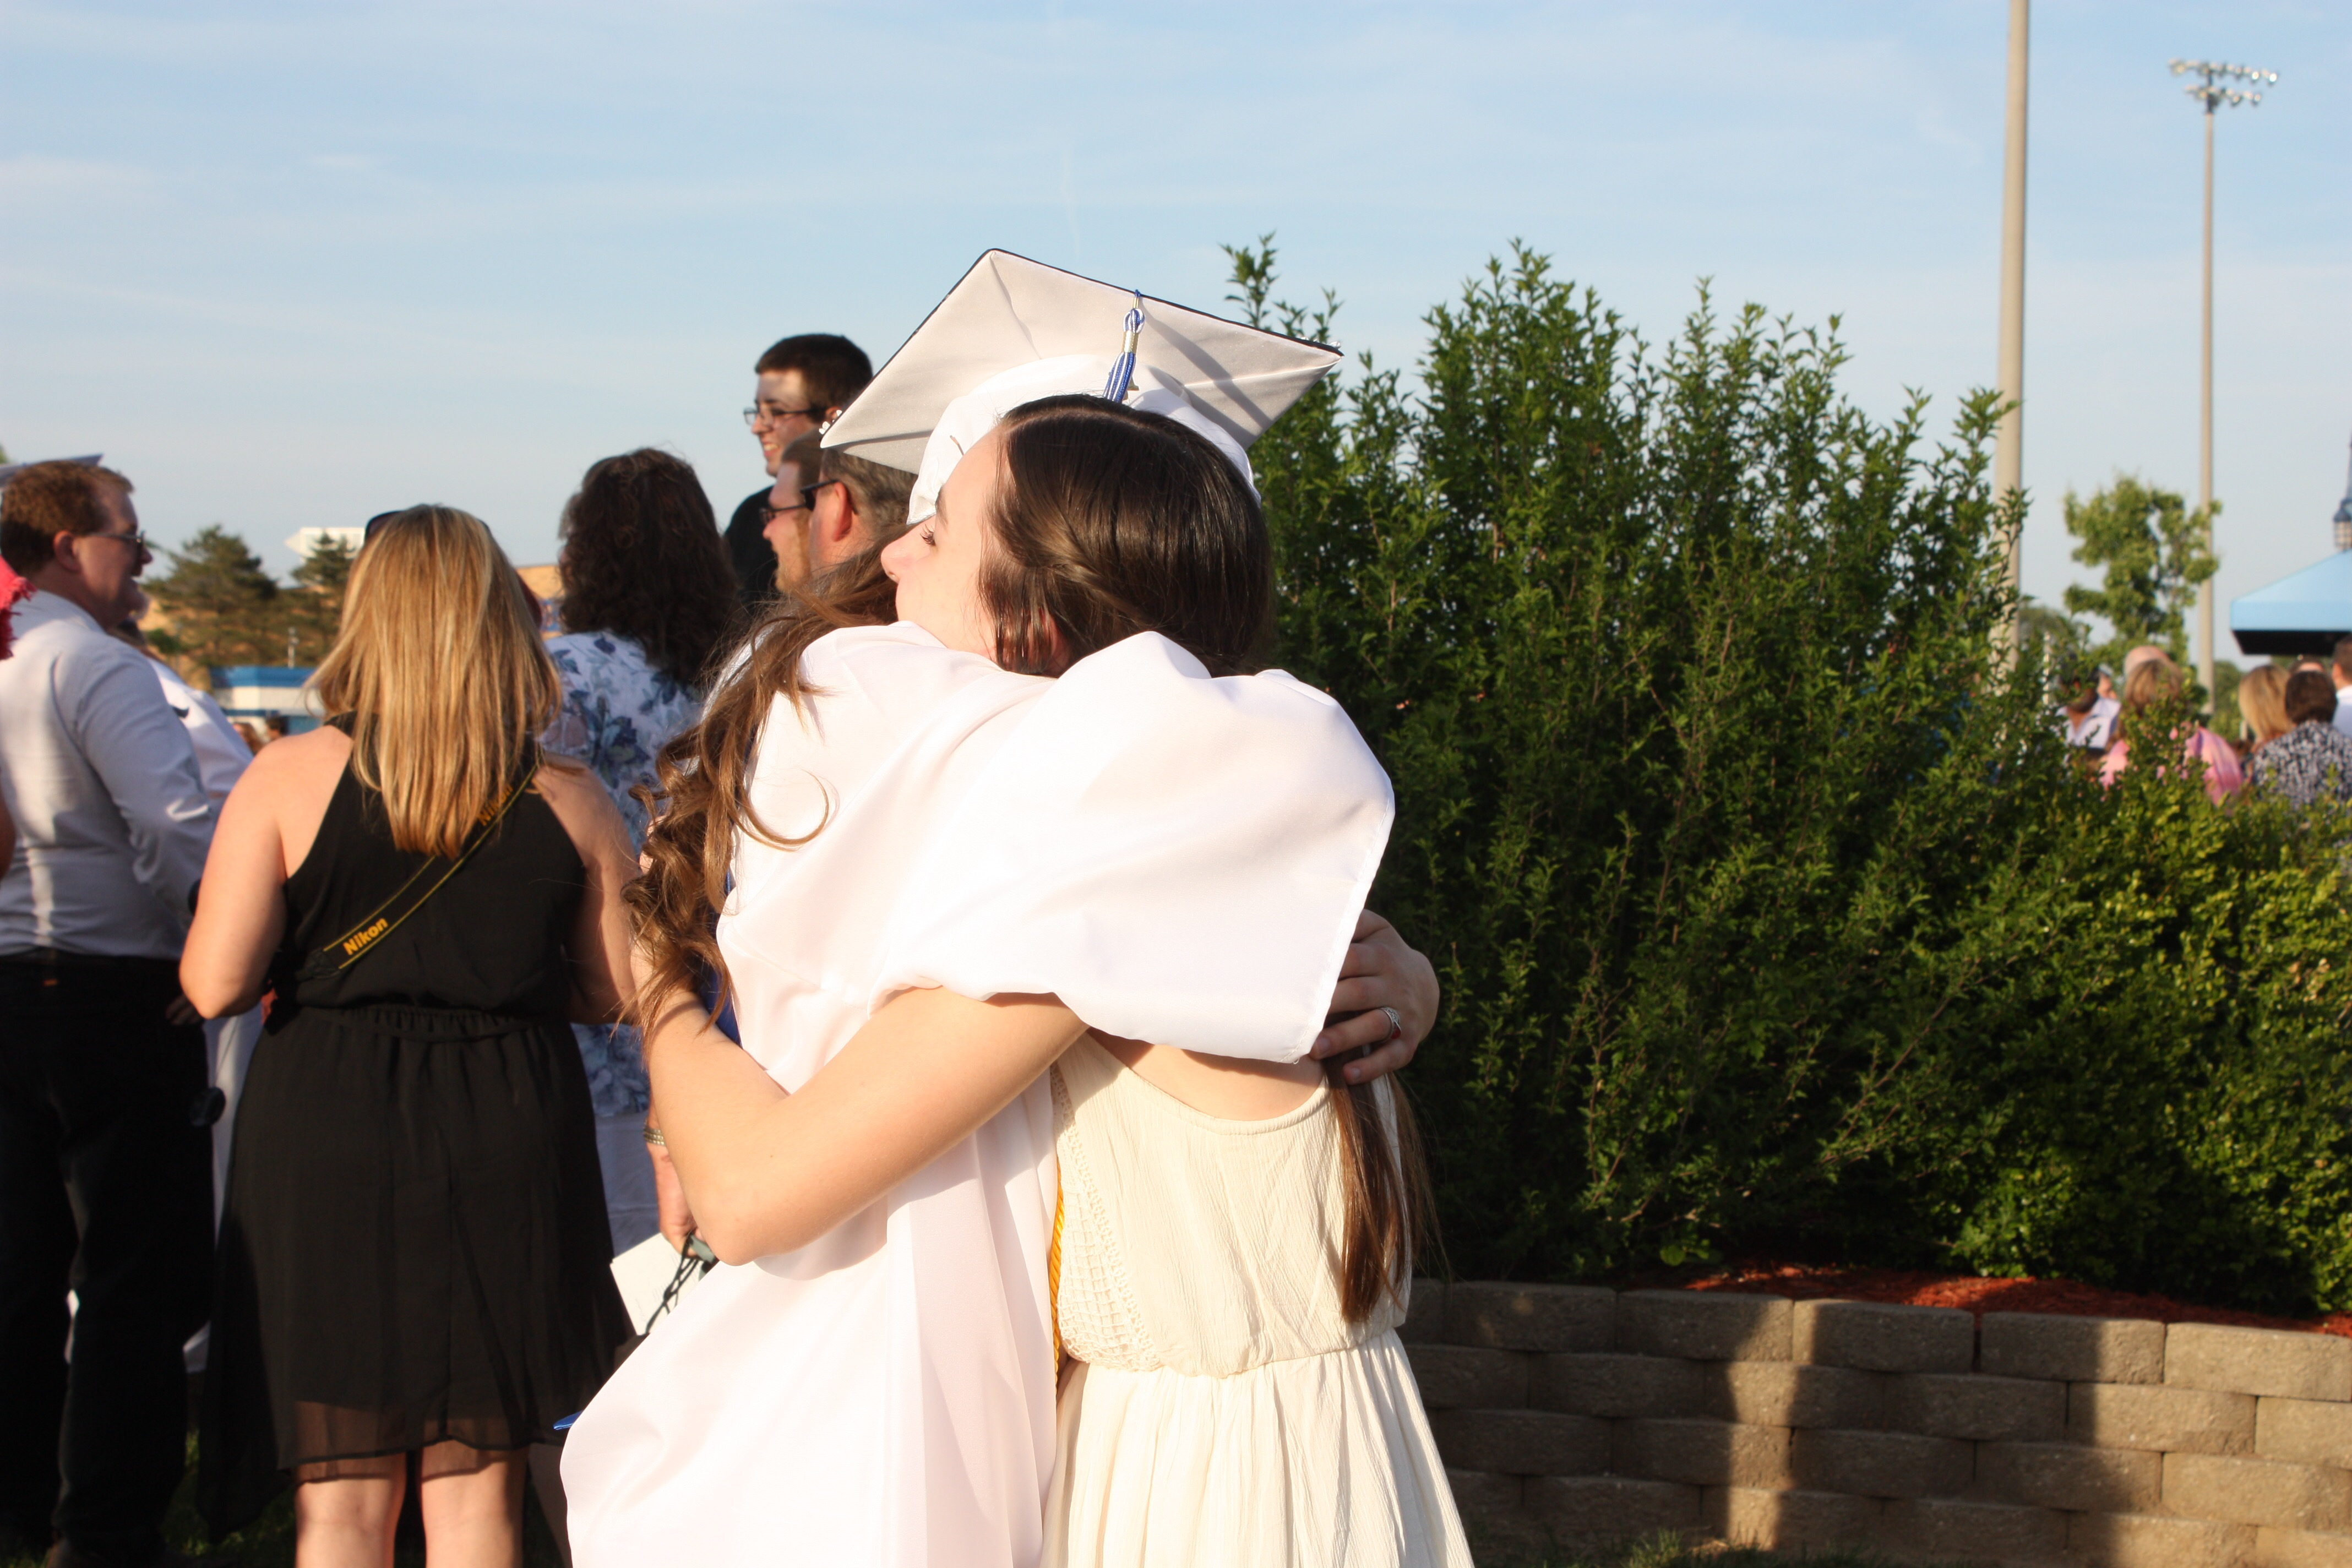 High school graduate hugging sister